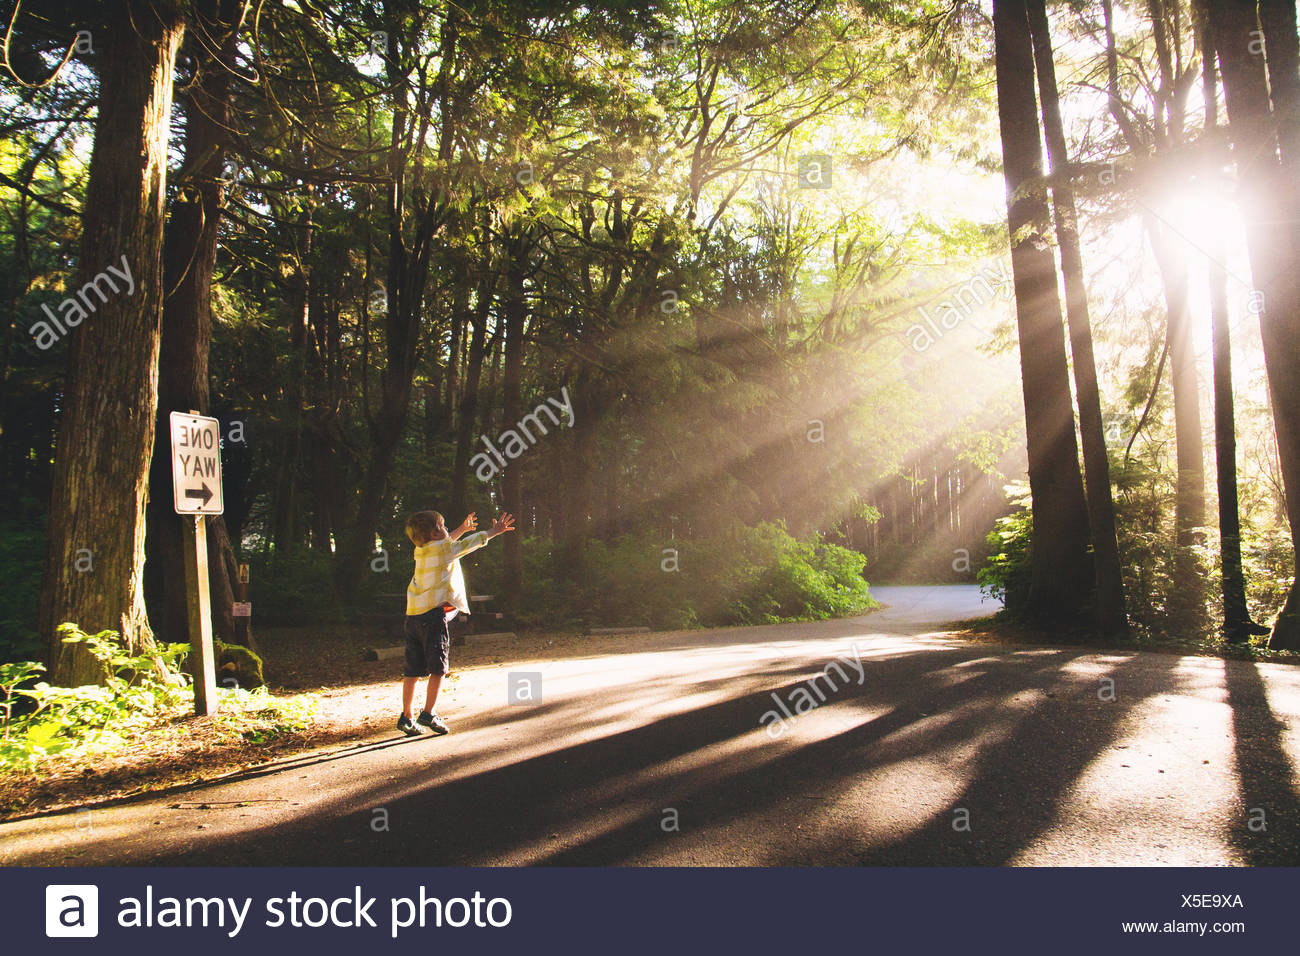 Boy reaching for light - Stock Image